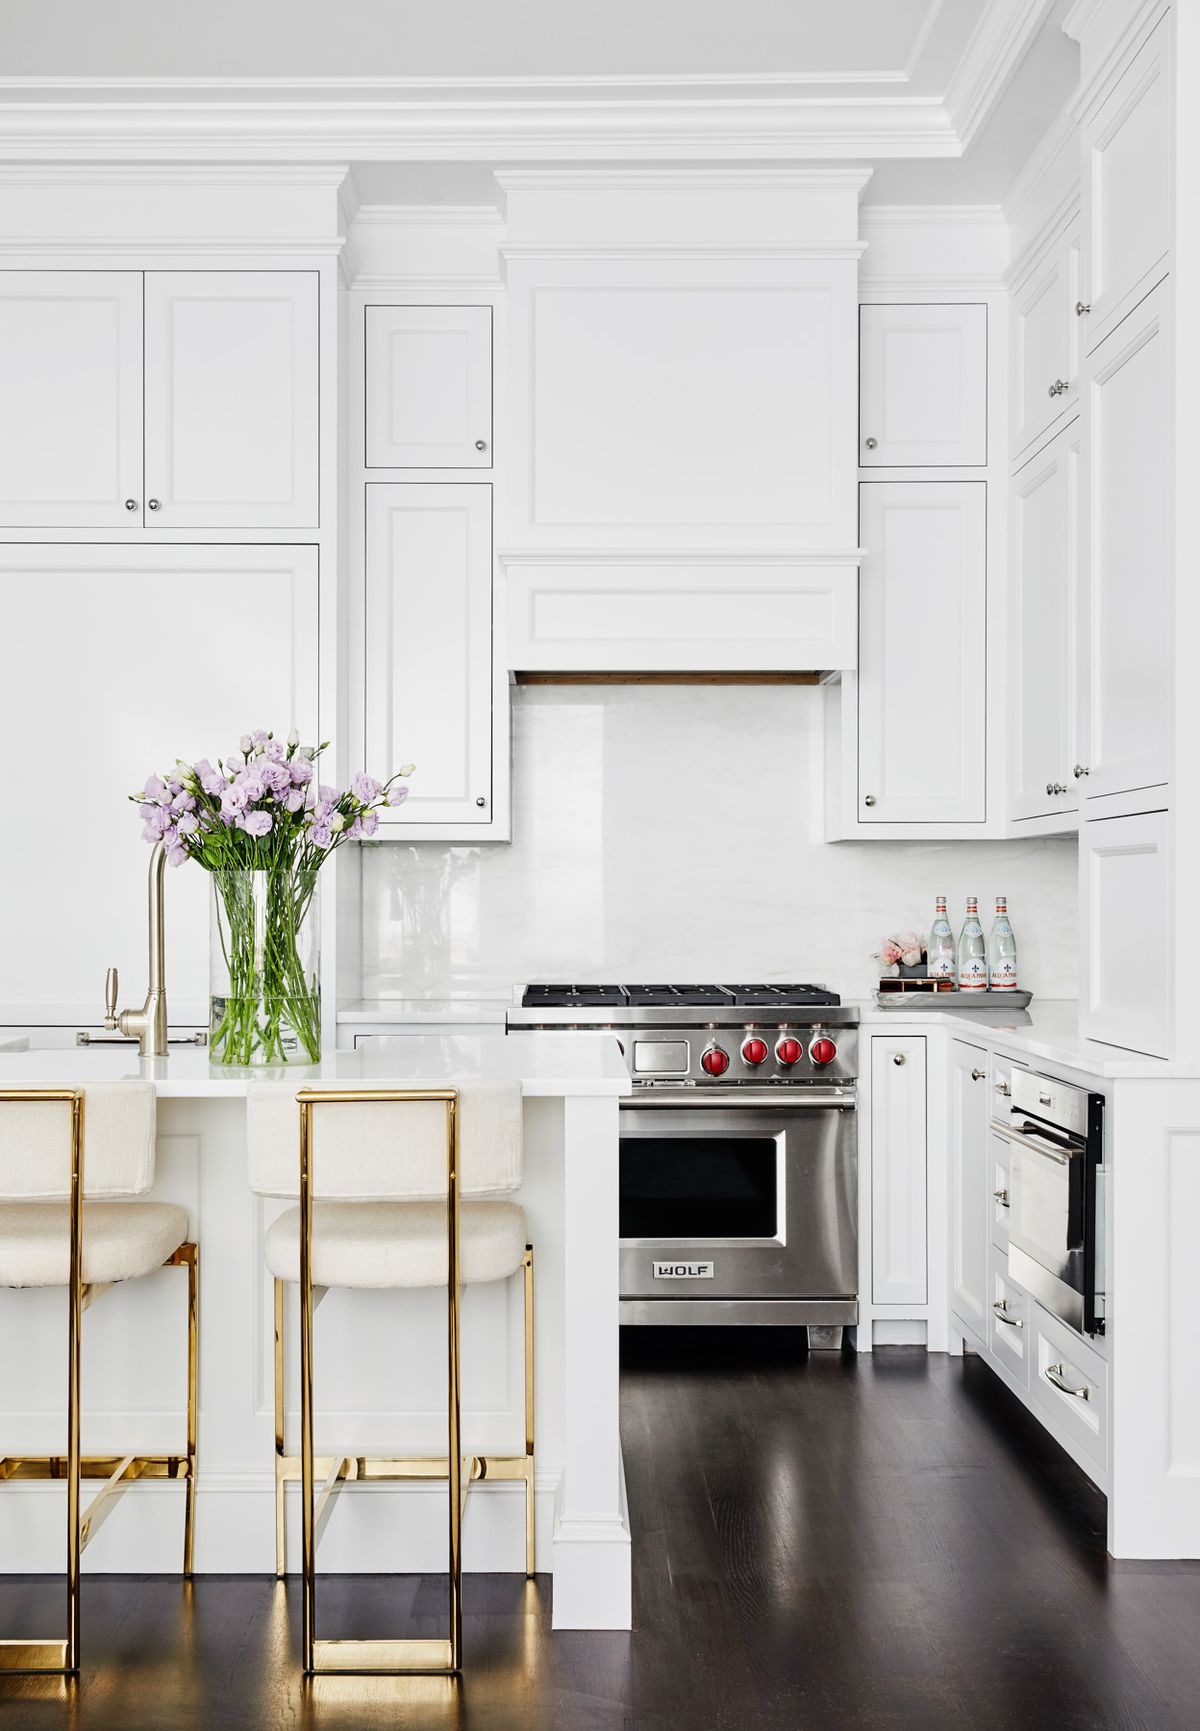 A clean, all-white kitchen with ample built in cabinets. The kitchen is accented by two gold metal-framed chairs that are tucked neatly under the kitchen island. There is a large bouquet of freshly-cut flowers sitting on the island.